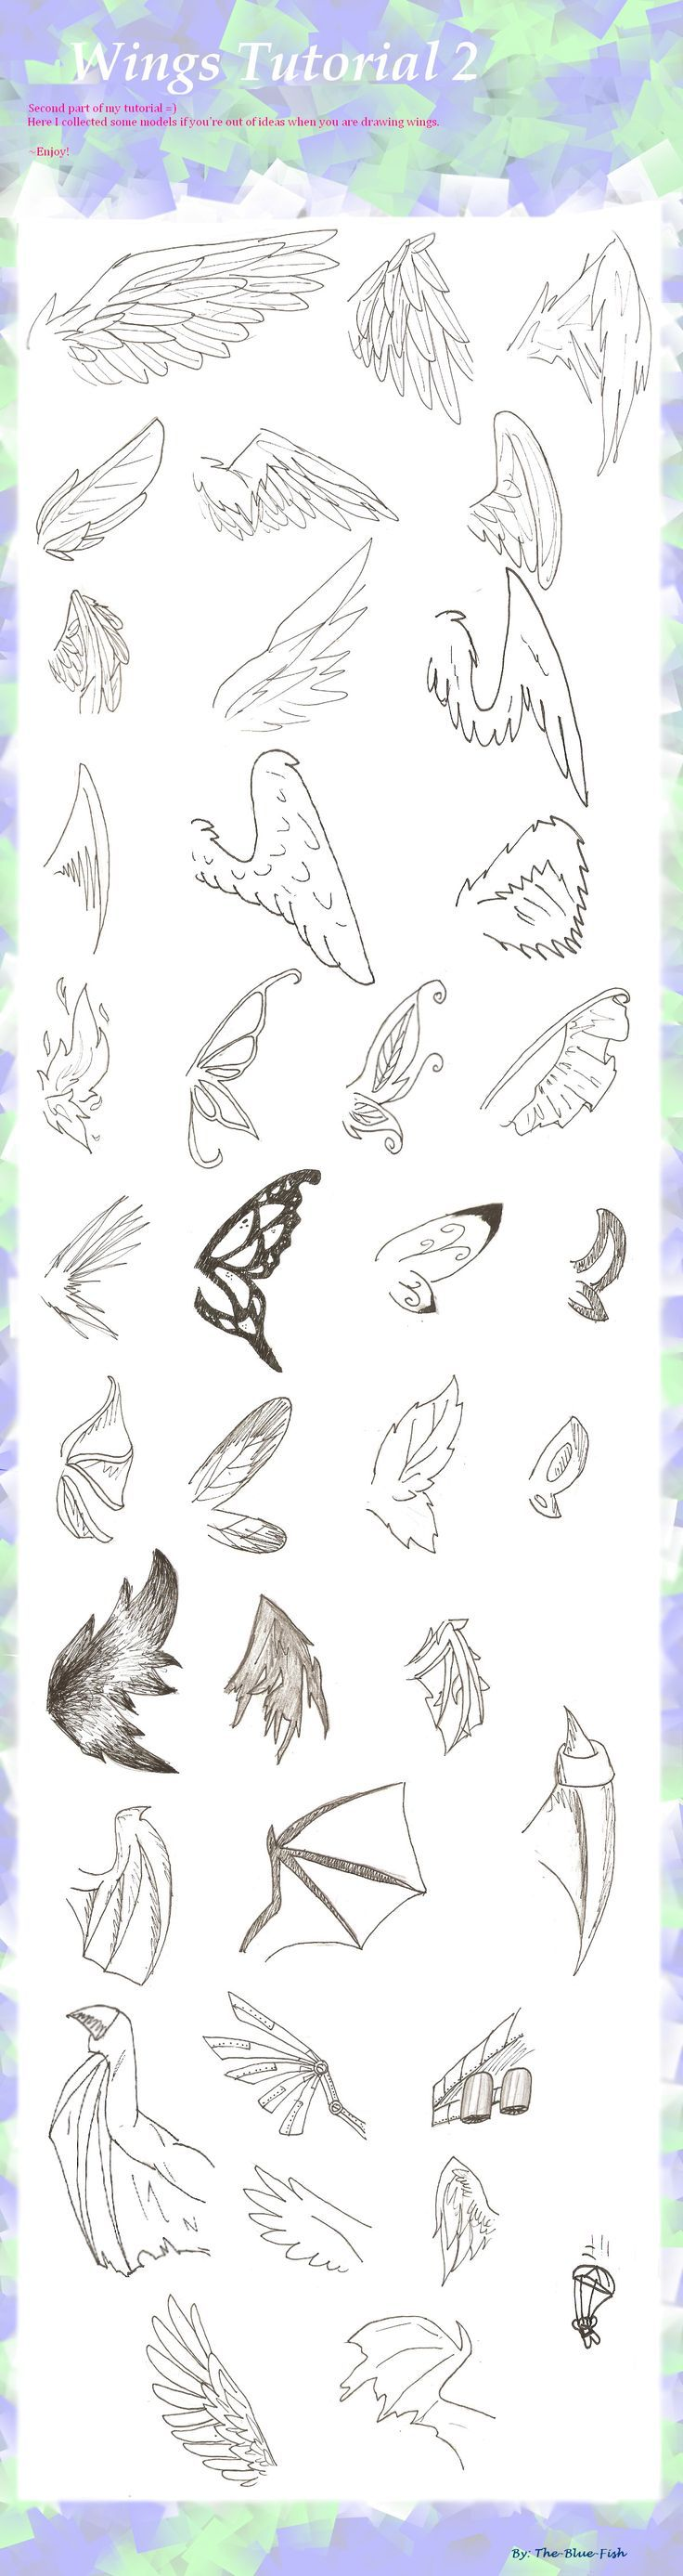 Photo of Wing Tutorial pt. 2 by the-blue-fish on DeviantArt